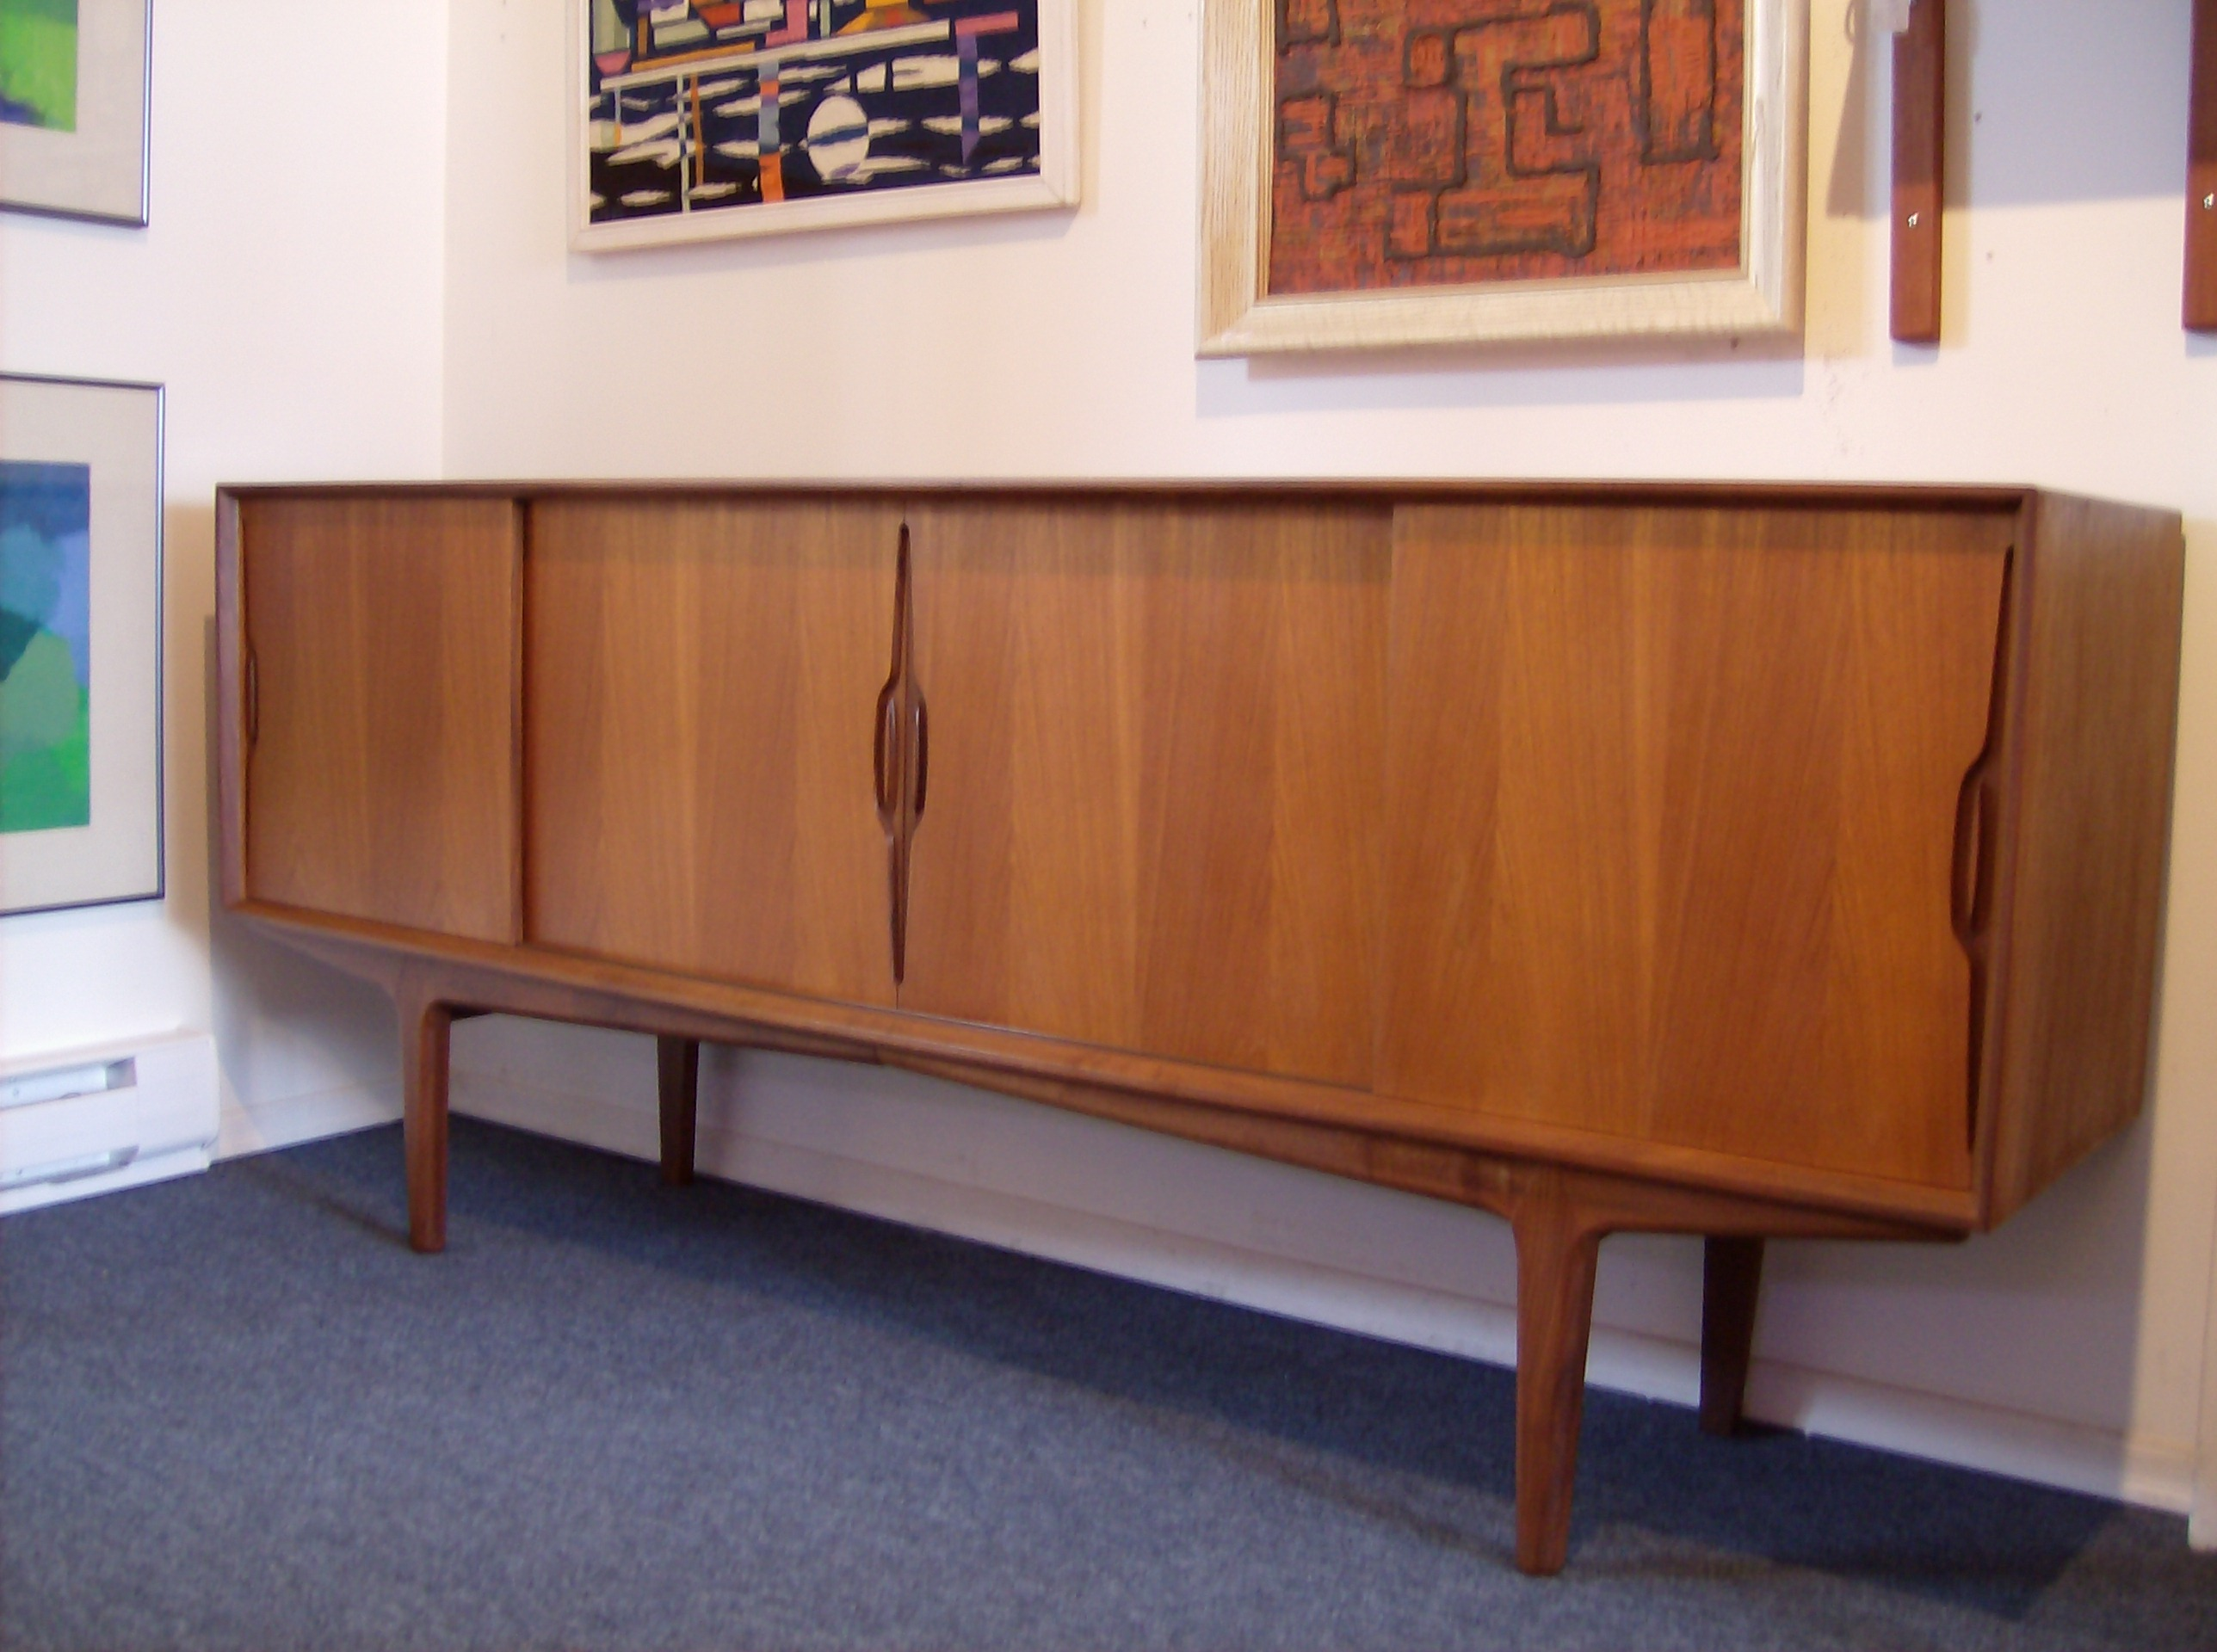 The fabulous find mid century modern furniture showroom for Cheap mid century modern furniture